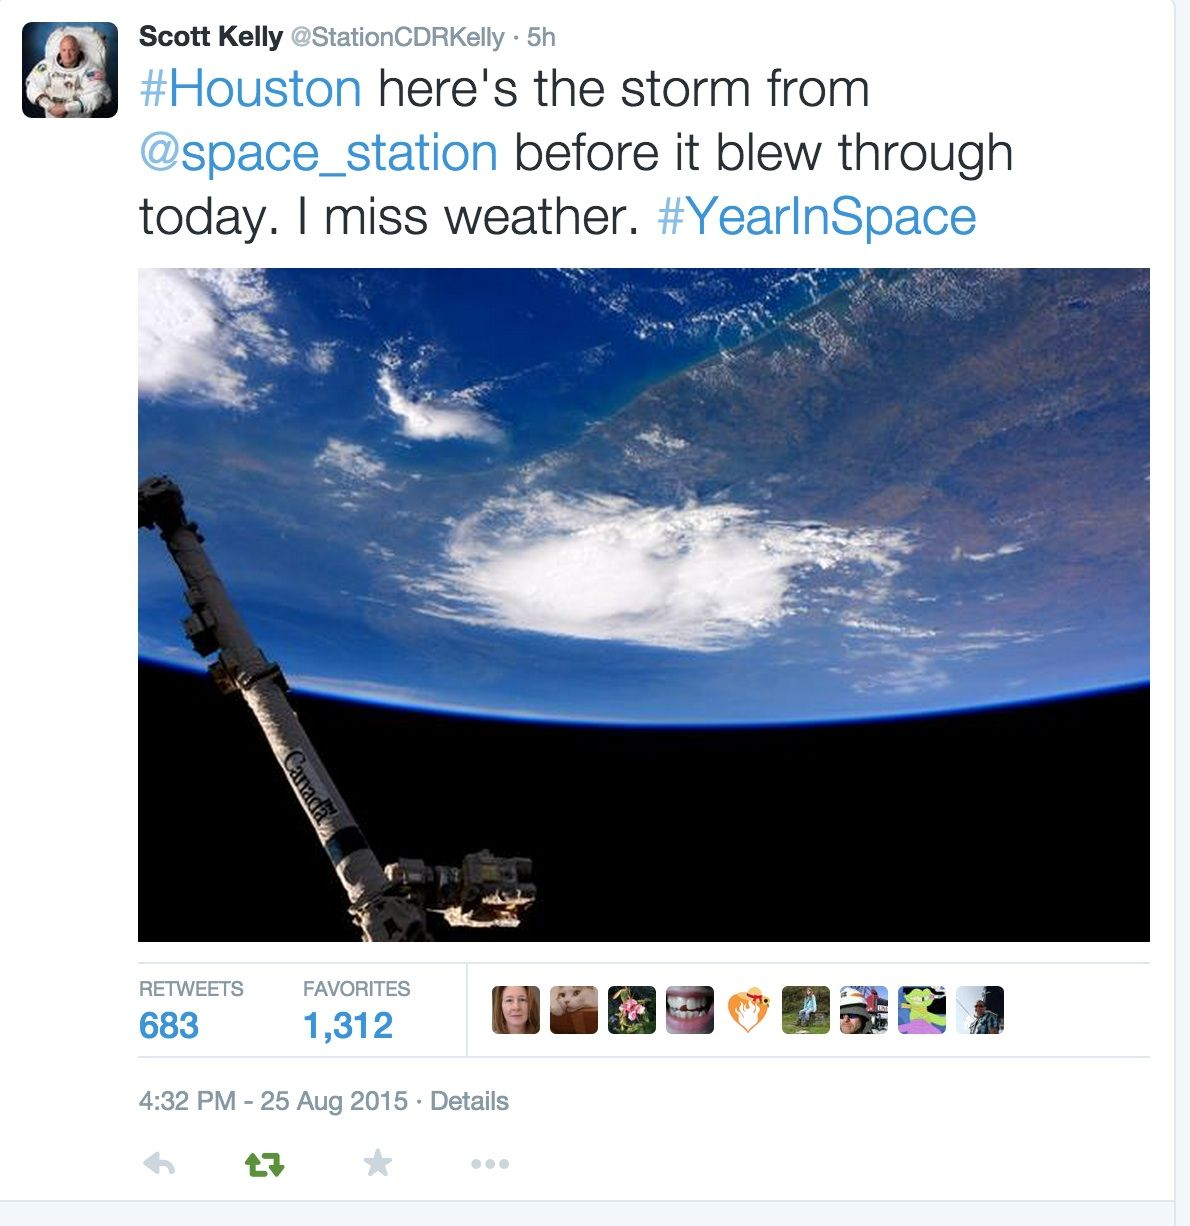 Scott Kelly misses our weather